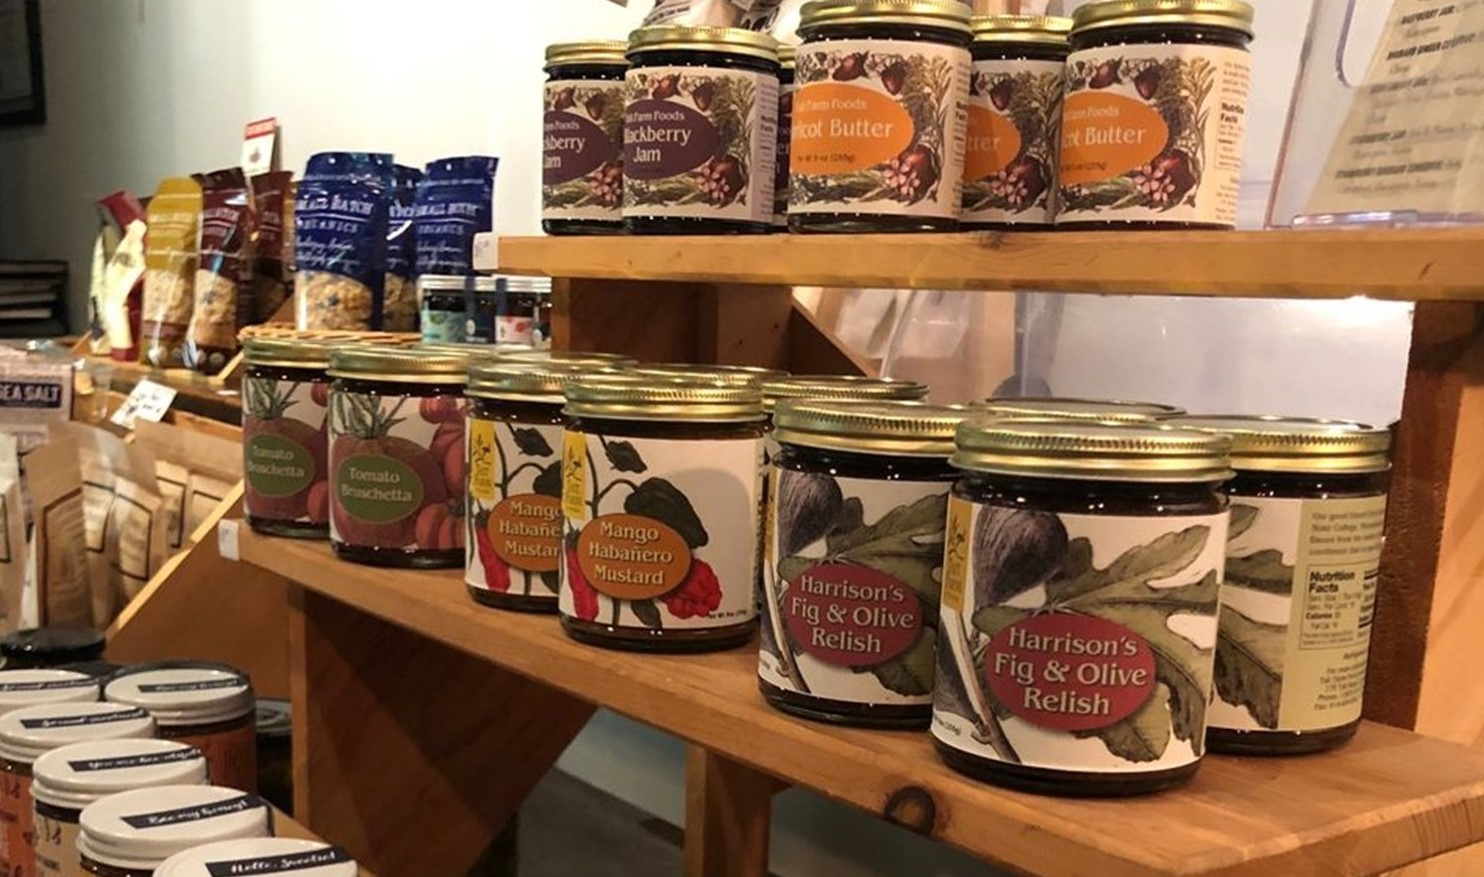 Steel City Coffeehouse in Phoenixville Gets Creative Amidst Pandemic, Adds Food Pantry